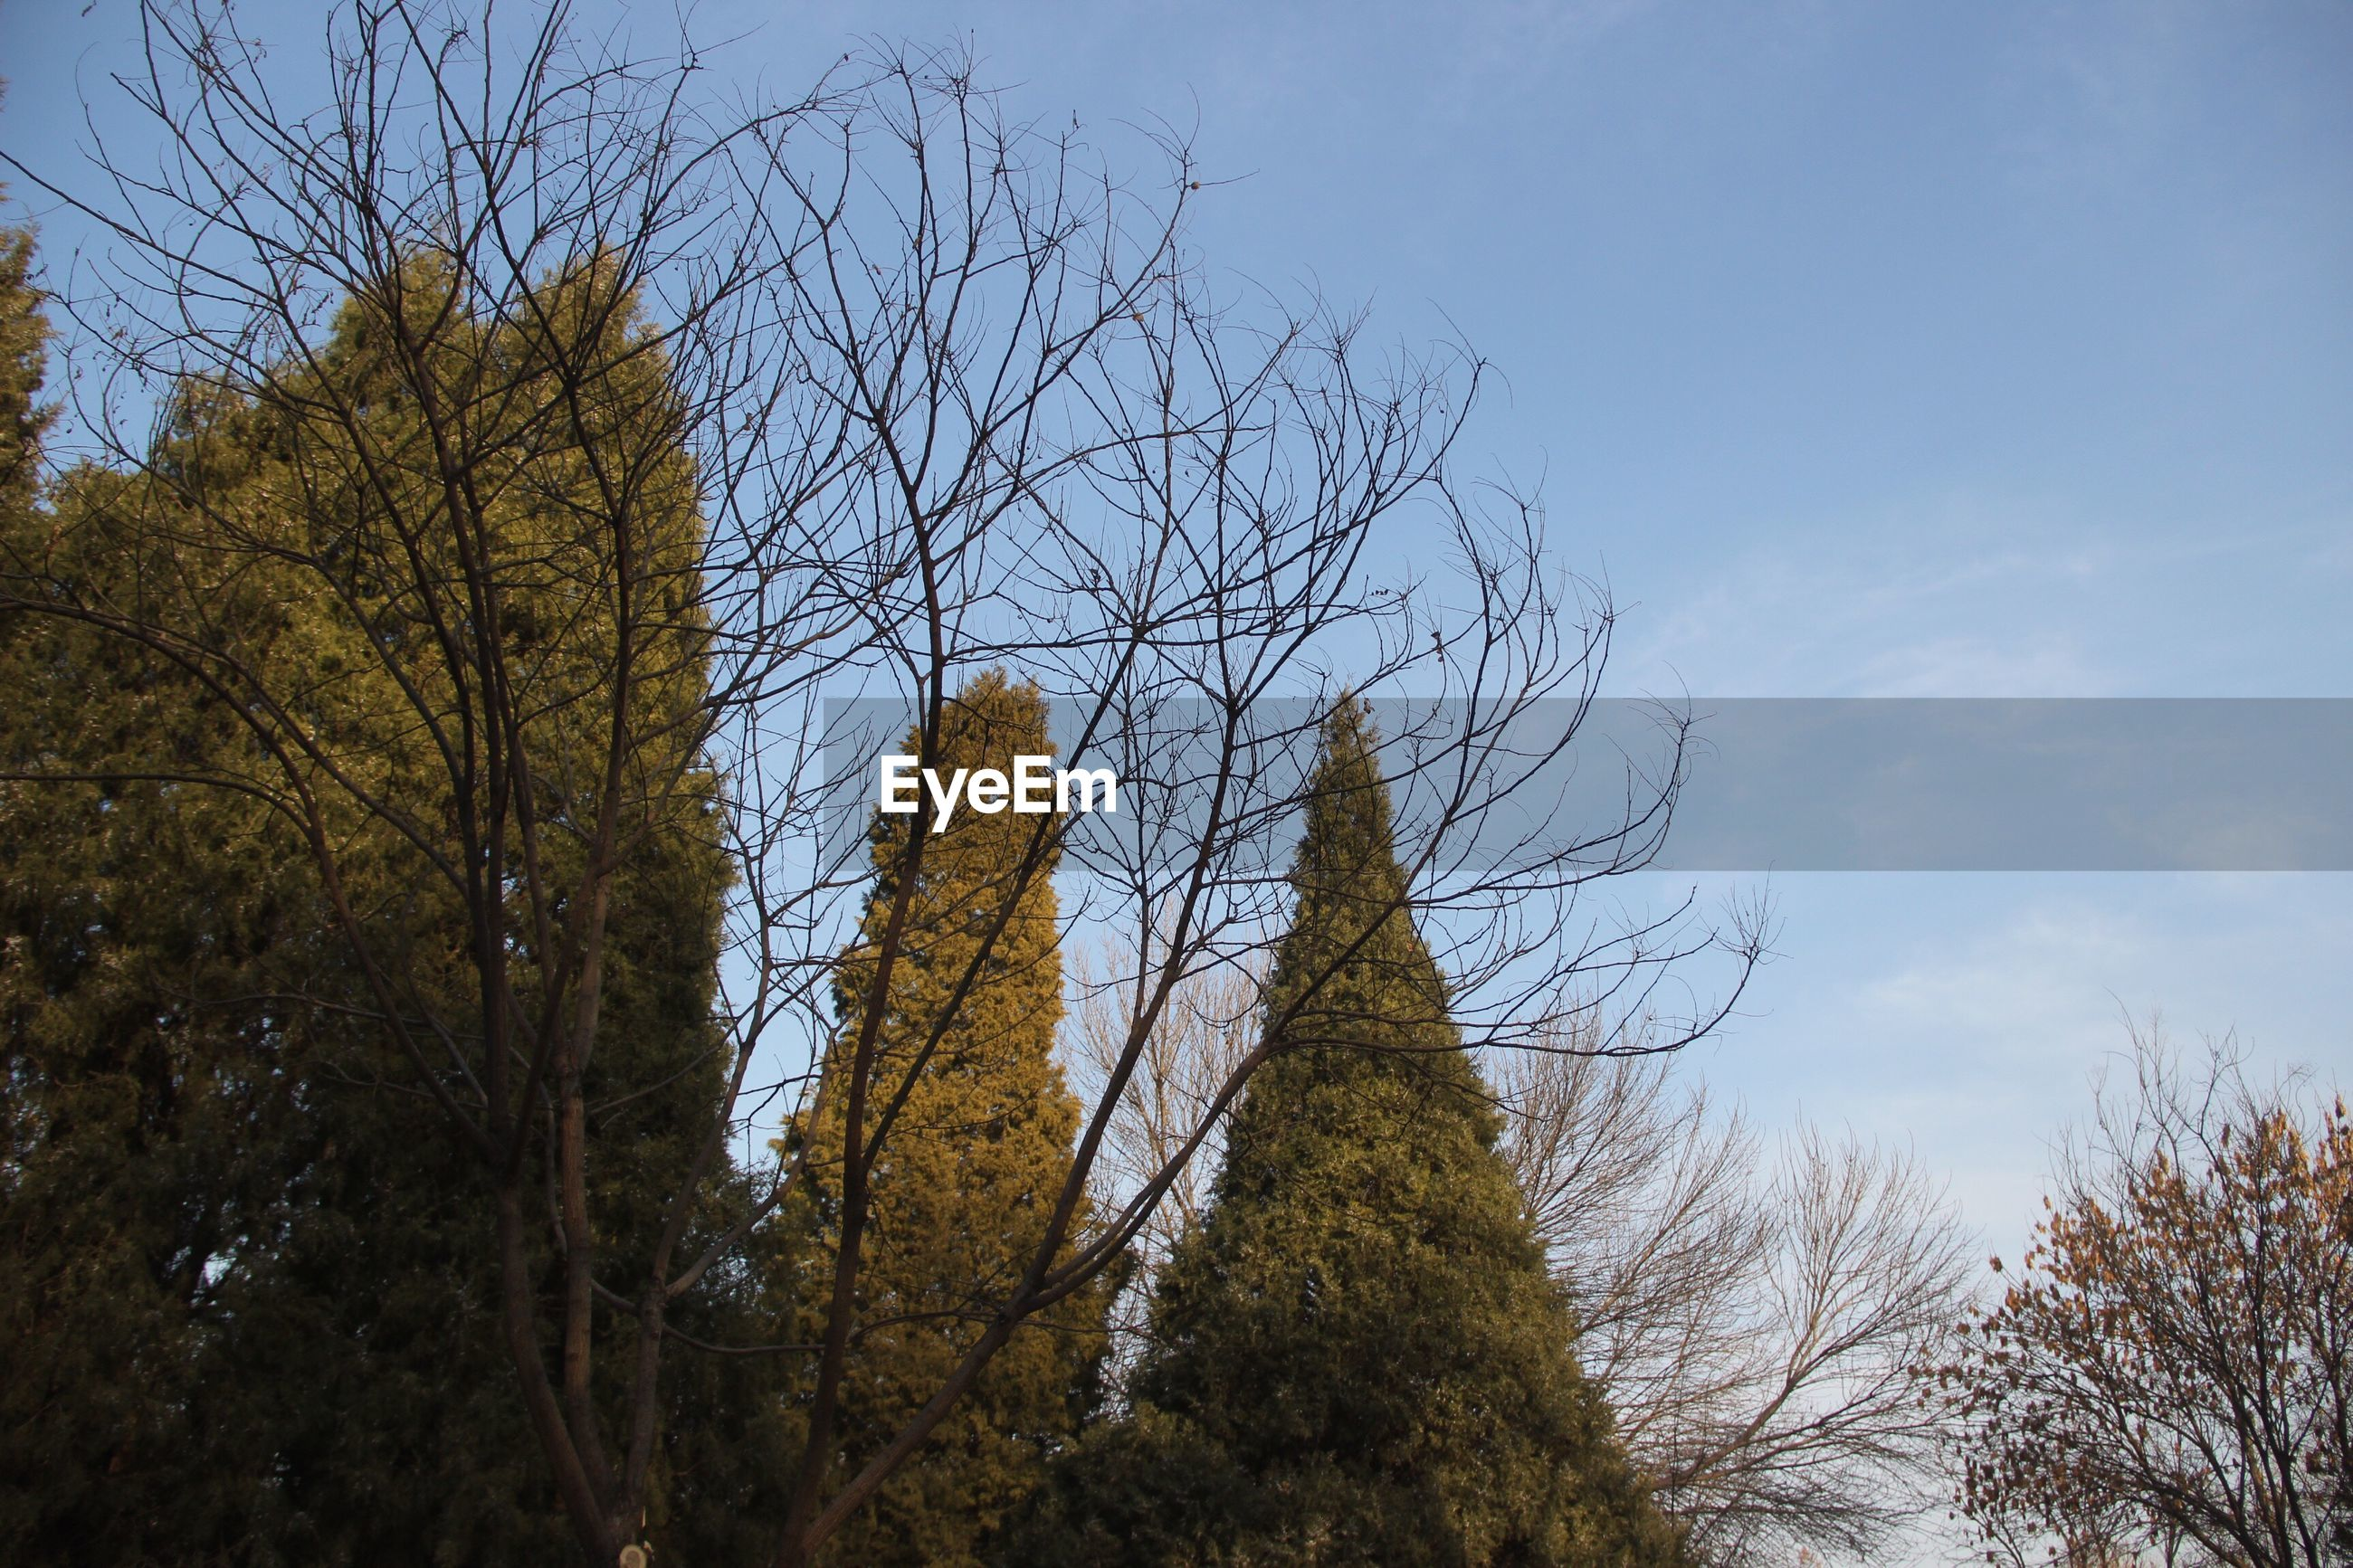 tree, sky, low angle view, nature, no people, outdoors, growth, day, scenics, beauty in nature